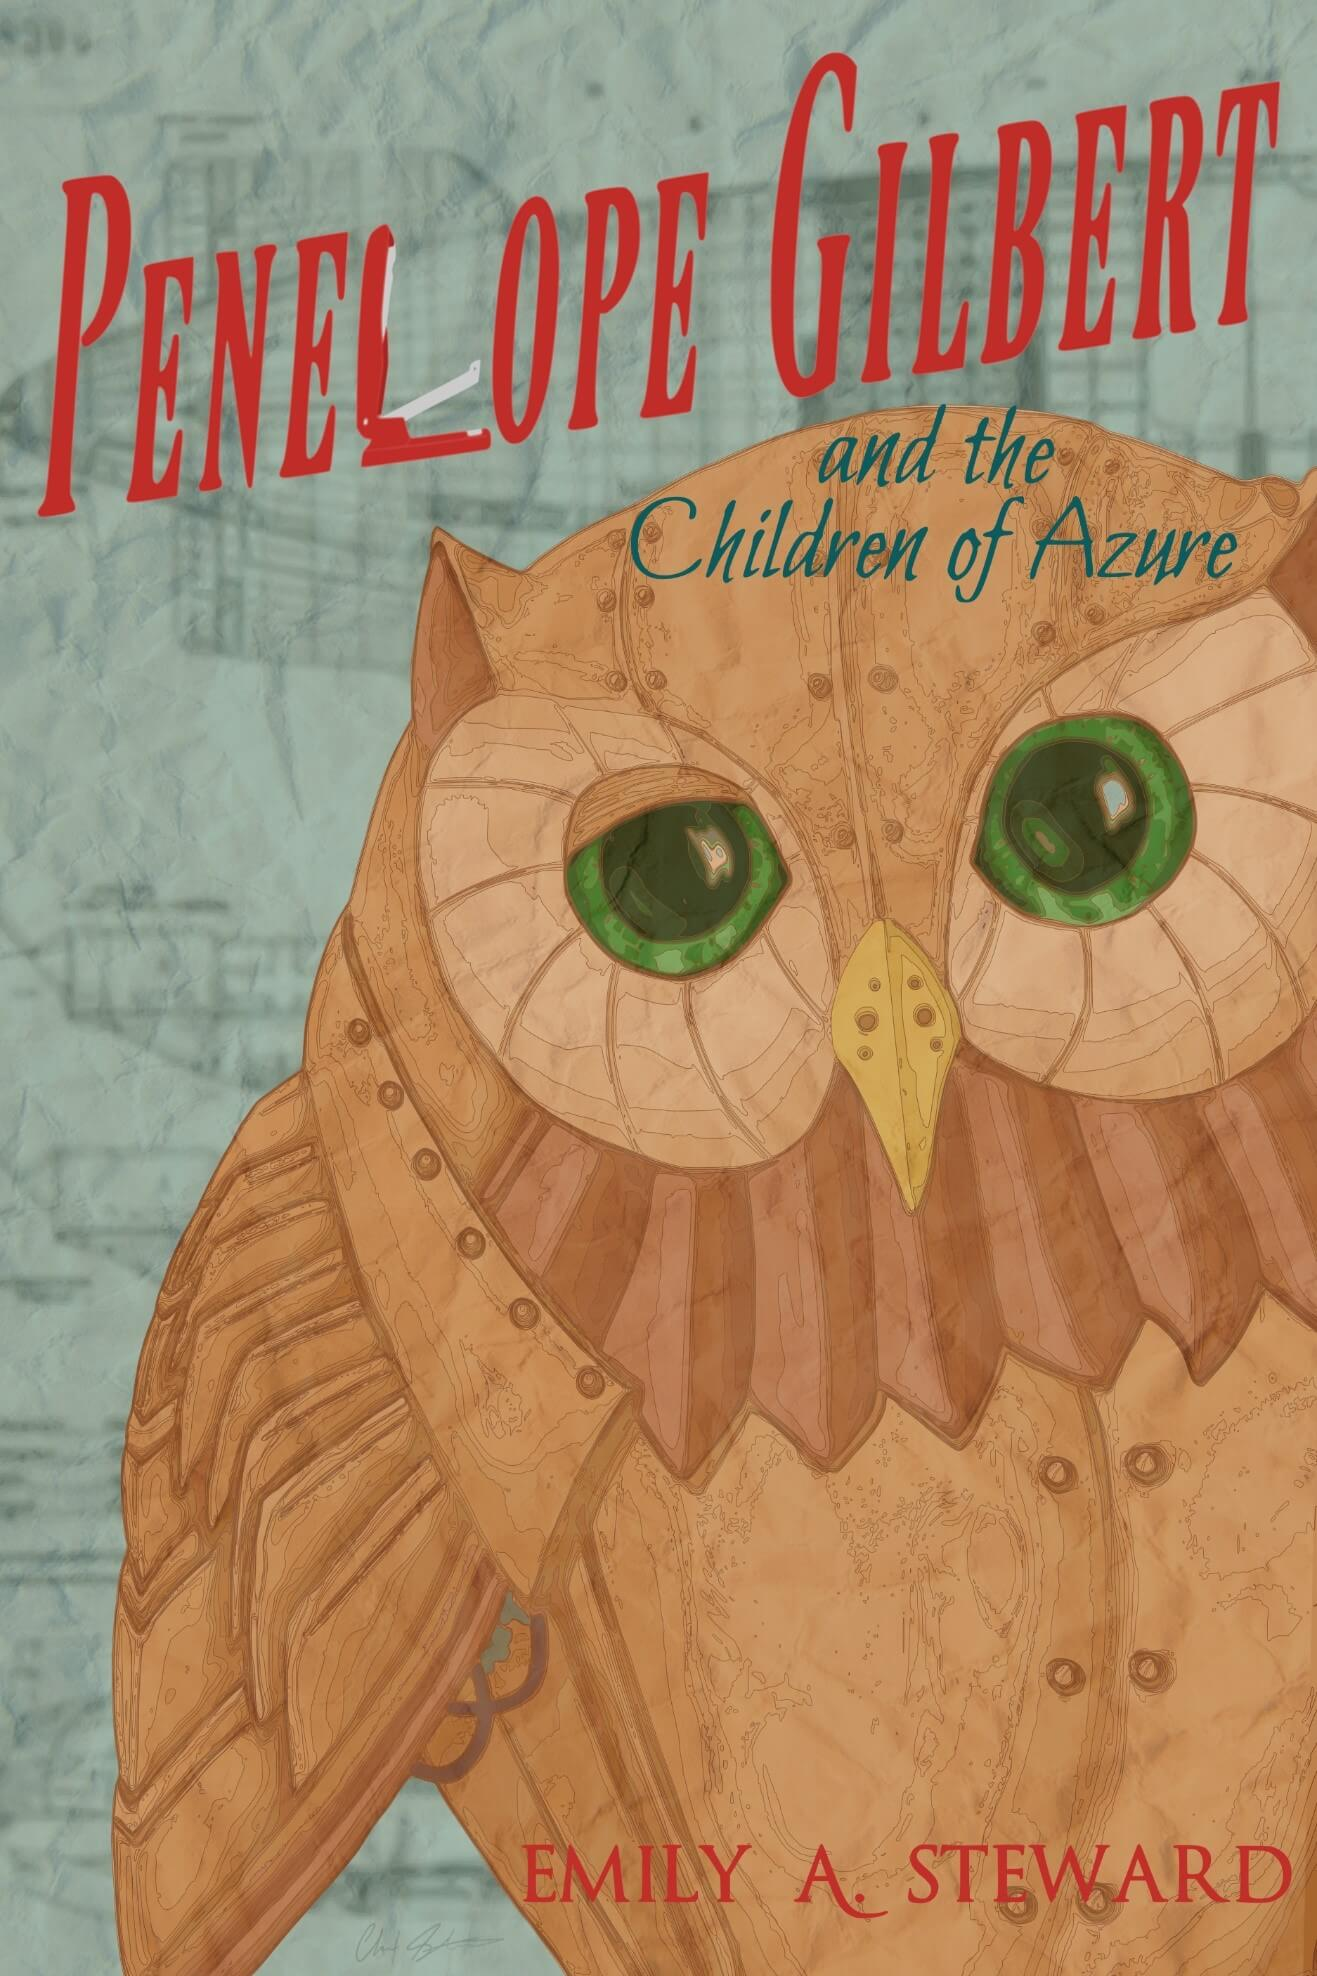 Penelope Gilbert book cover, owl